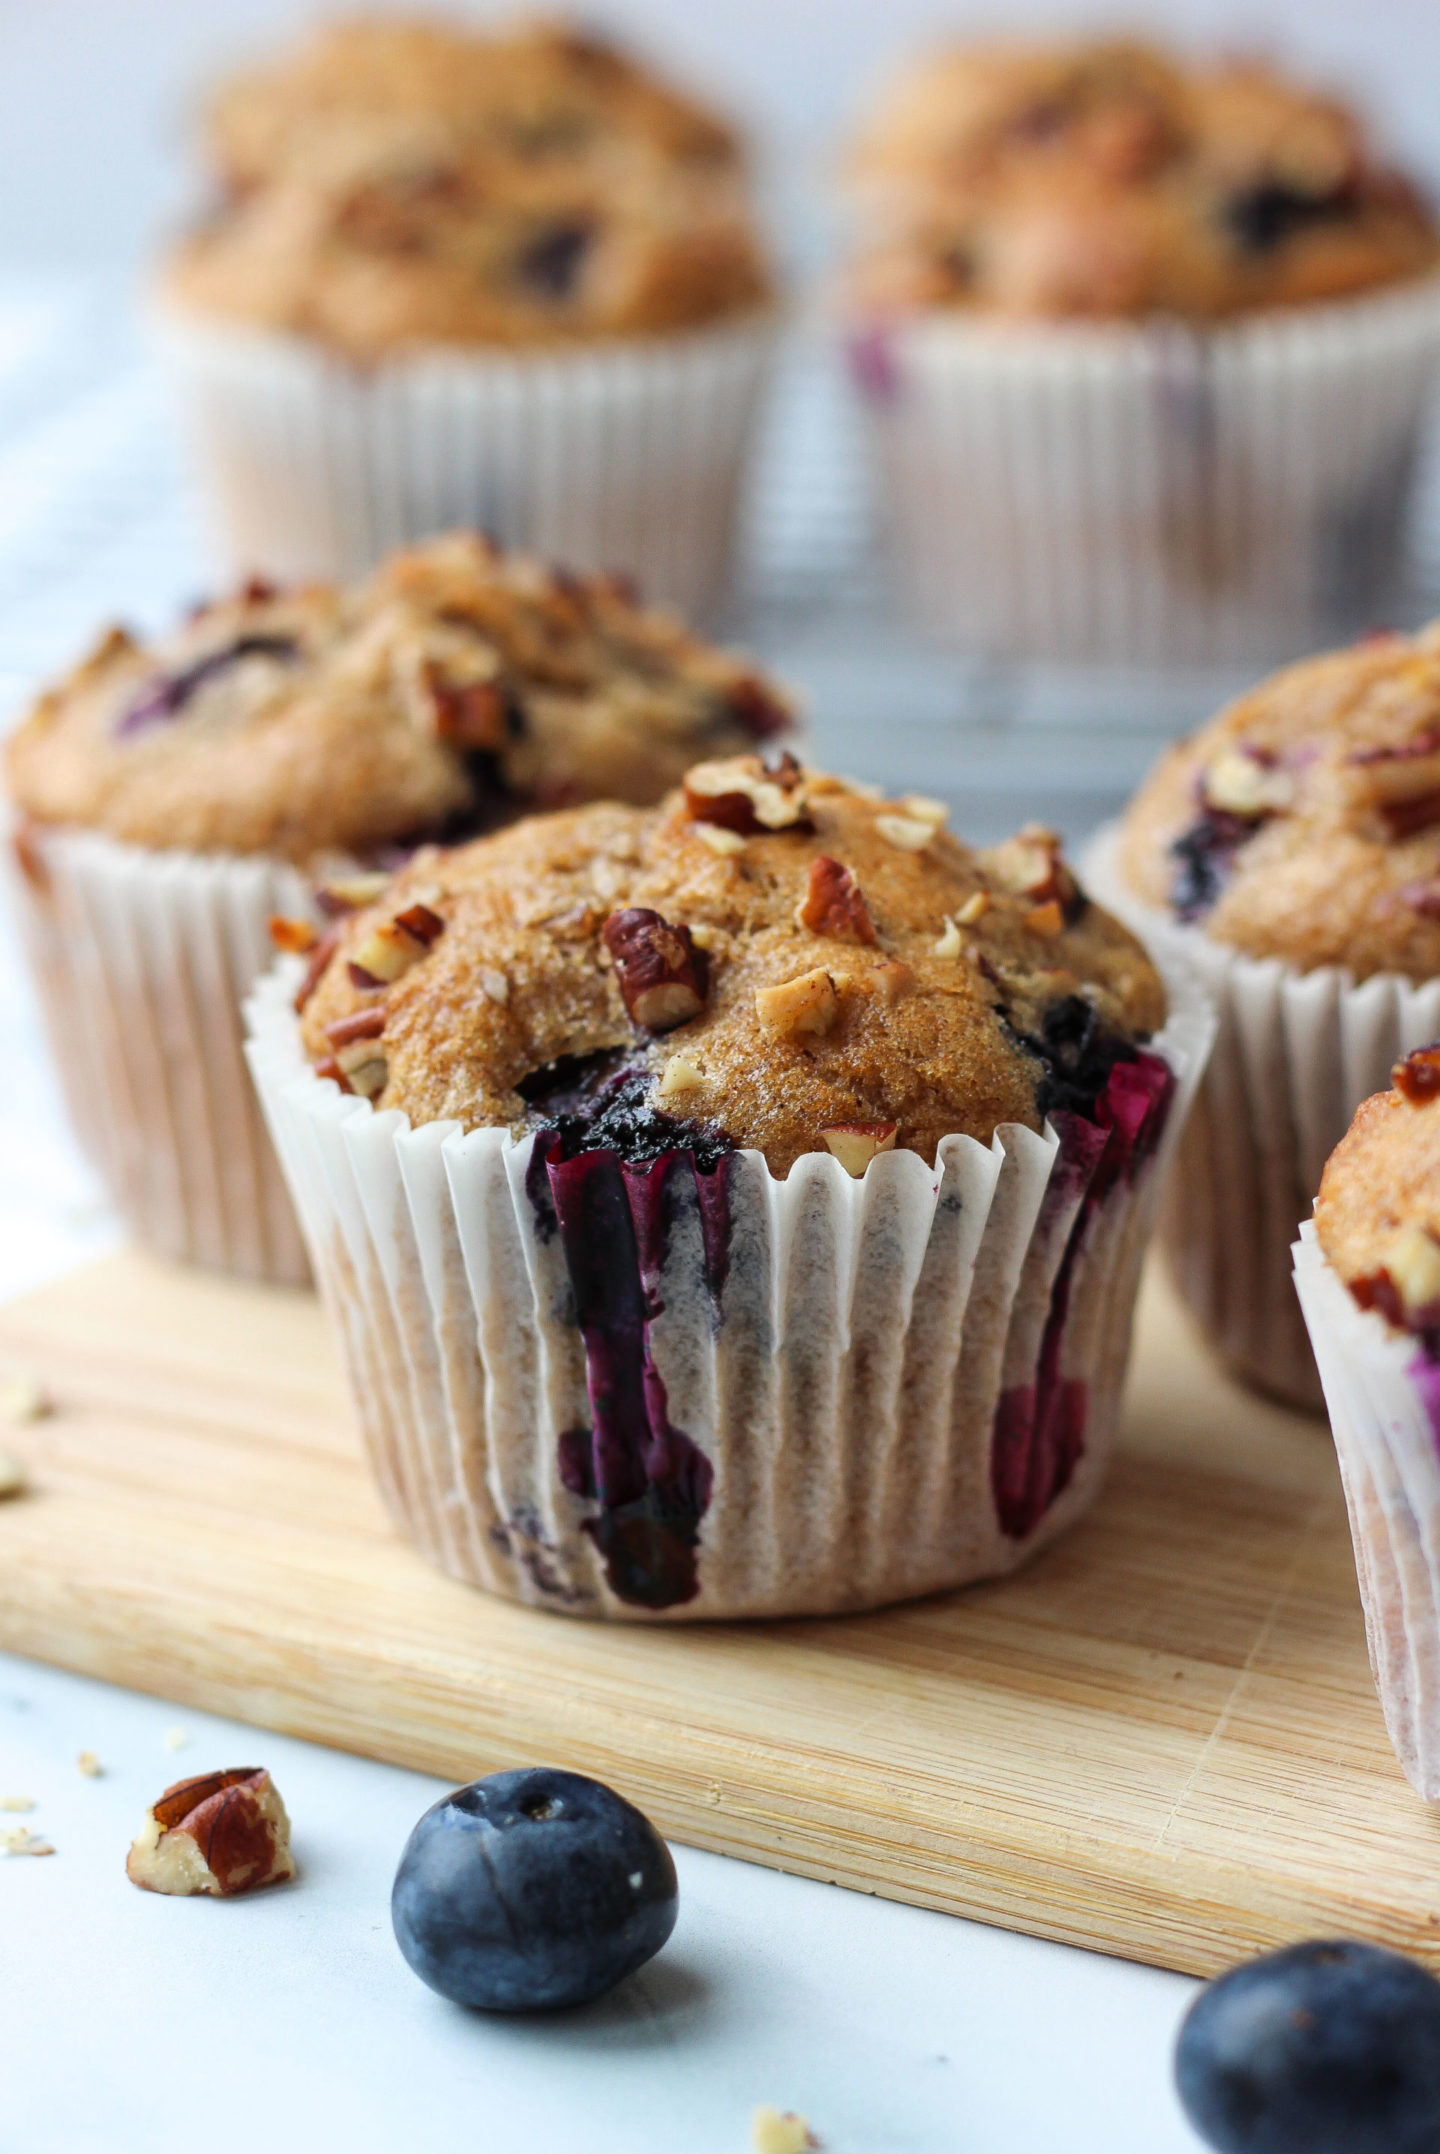 close up of a blueberry nut muffin with others in background